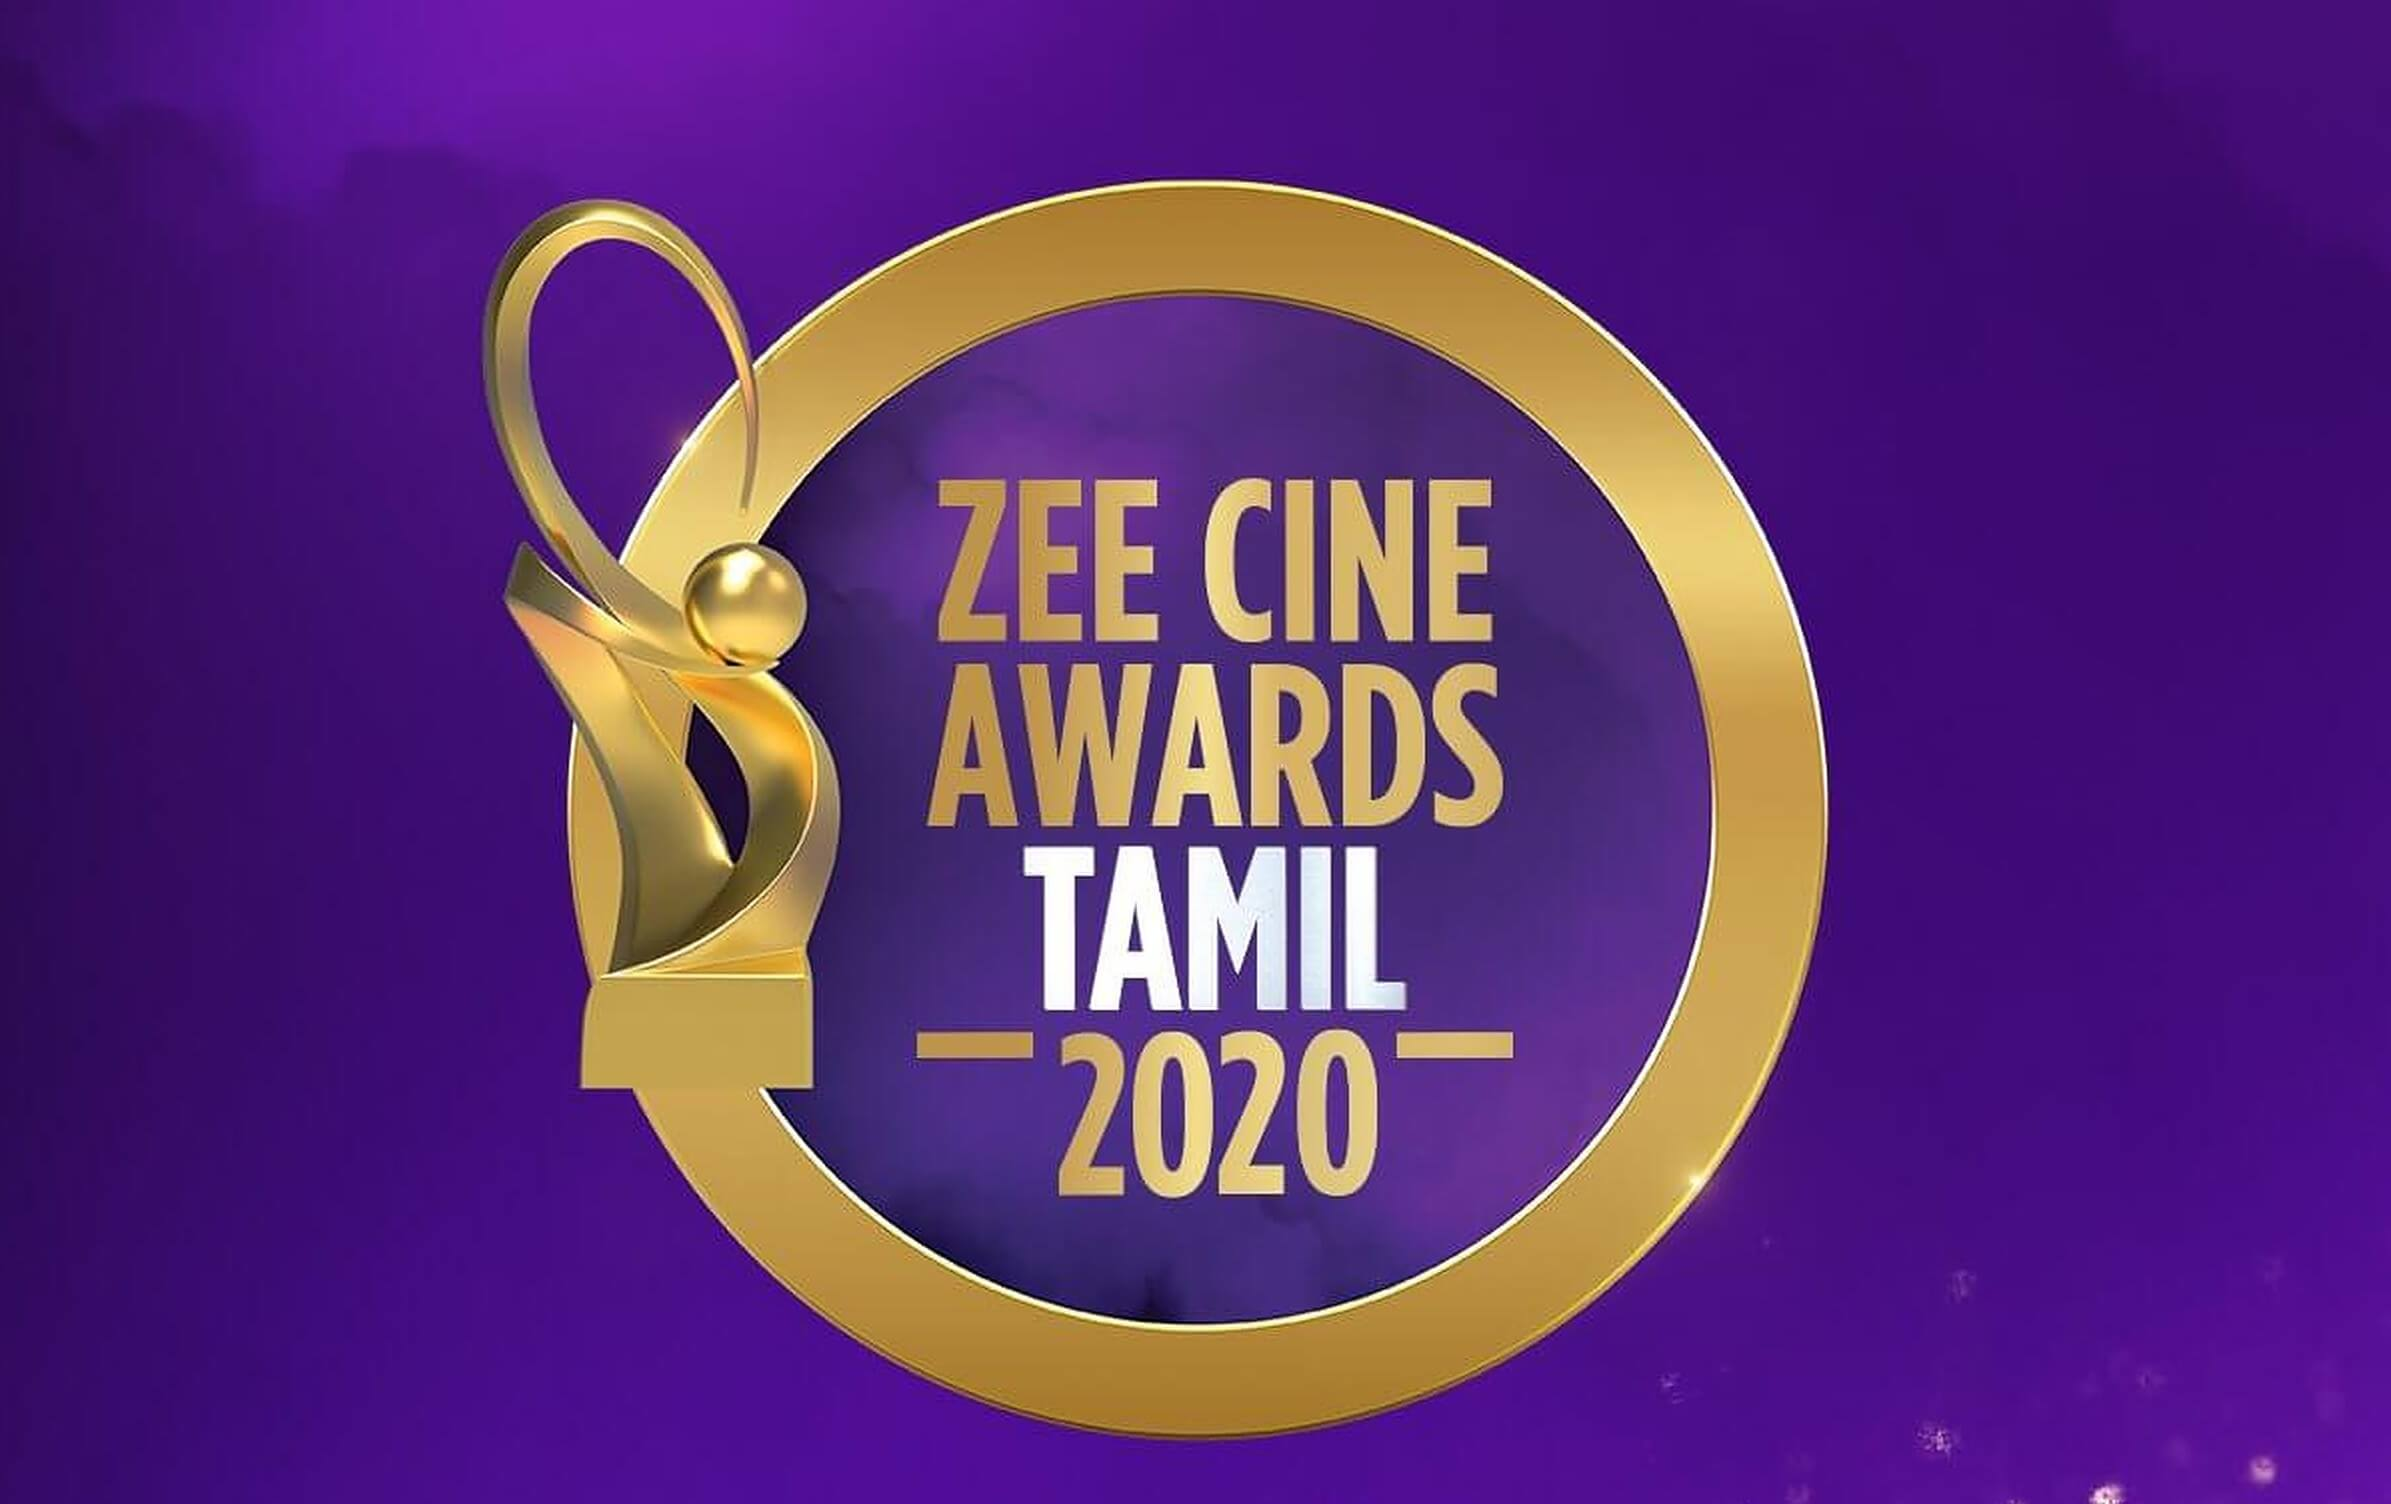 Filmfare Awards 2020 Full Show.Zee Cine Awards Tamil 2020 Online Voting Winners Zee Tamil